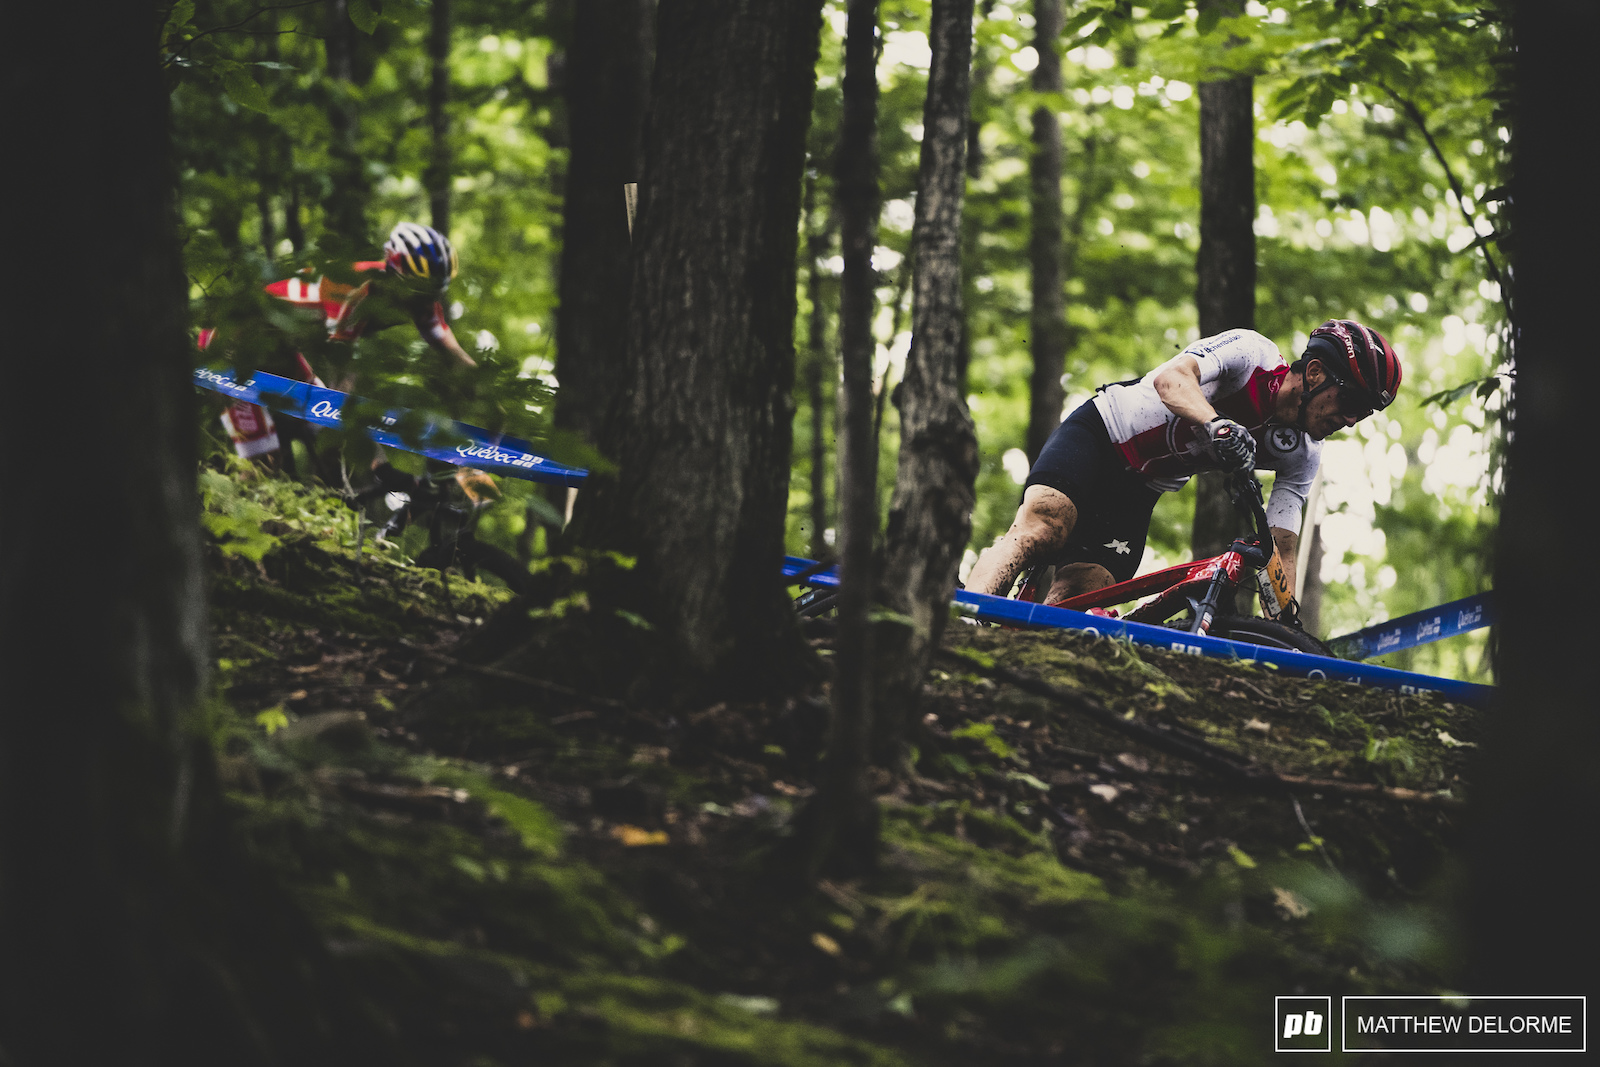 Vital Albin took third today on the slippery Mont Sainte Anne course.